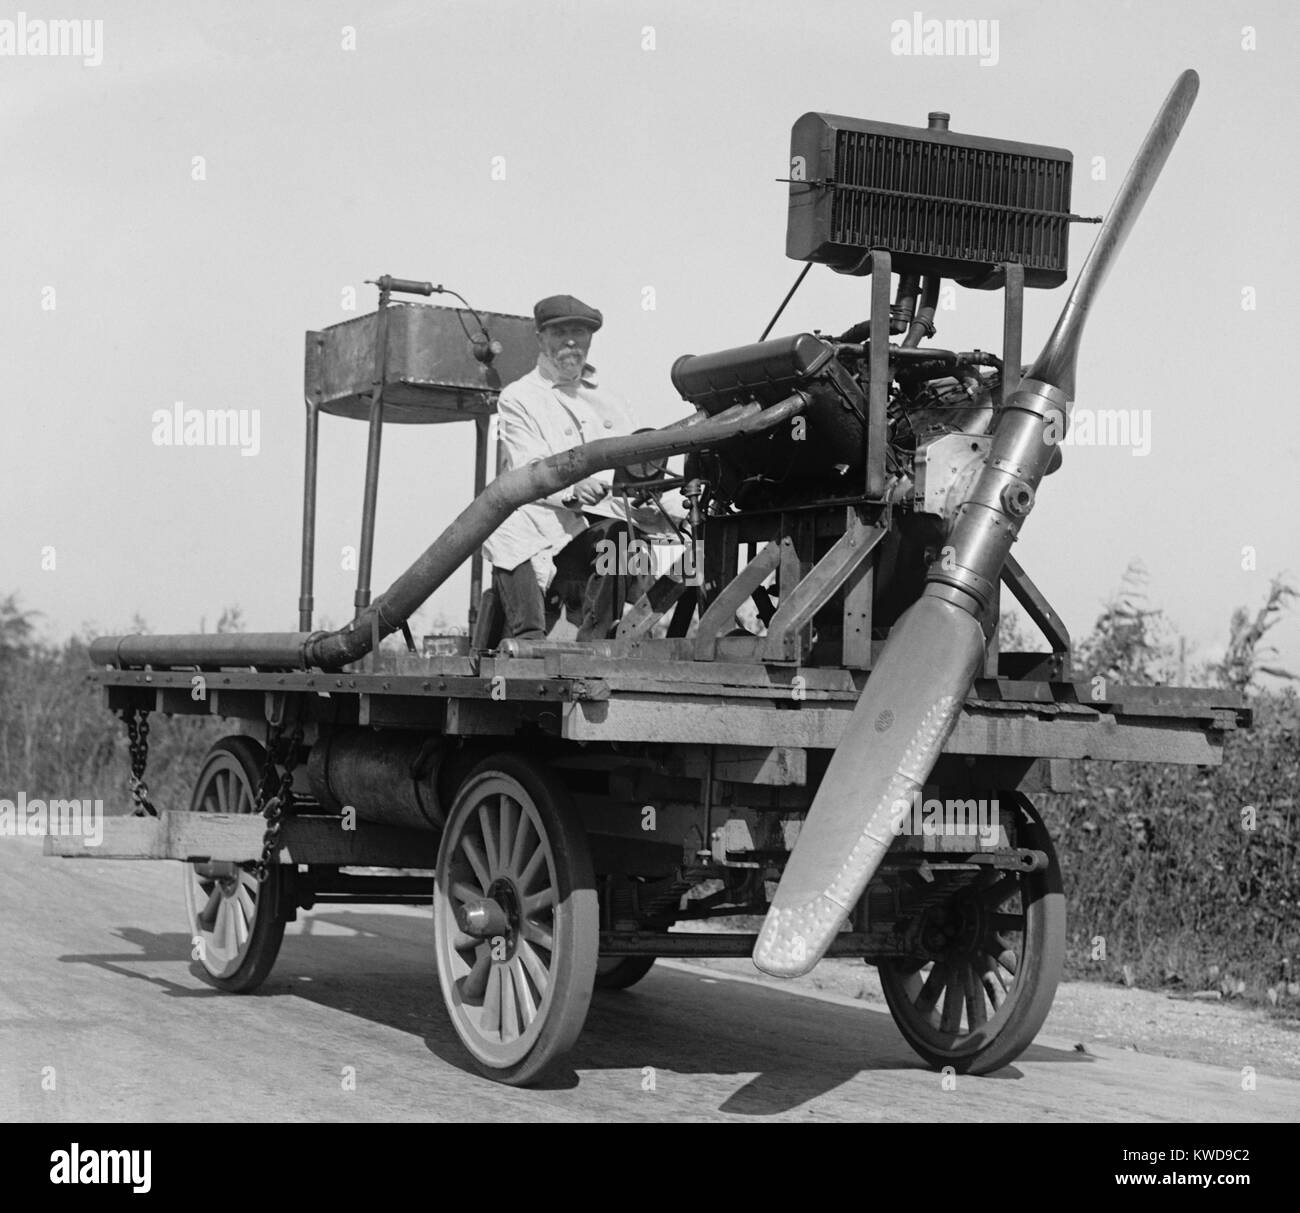 Man on wheeled vehicle with mounted propeller, in Washington, D.C. vicinity, Oct. 11, 1922 (BSLOC_2016_10_132) - Stock Image